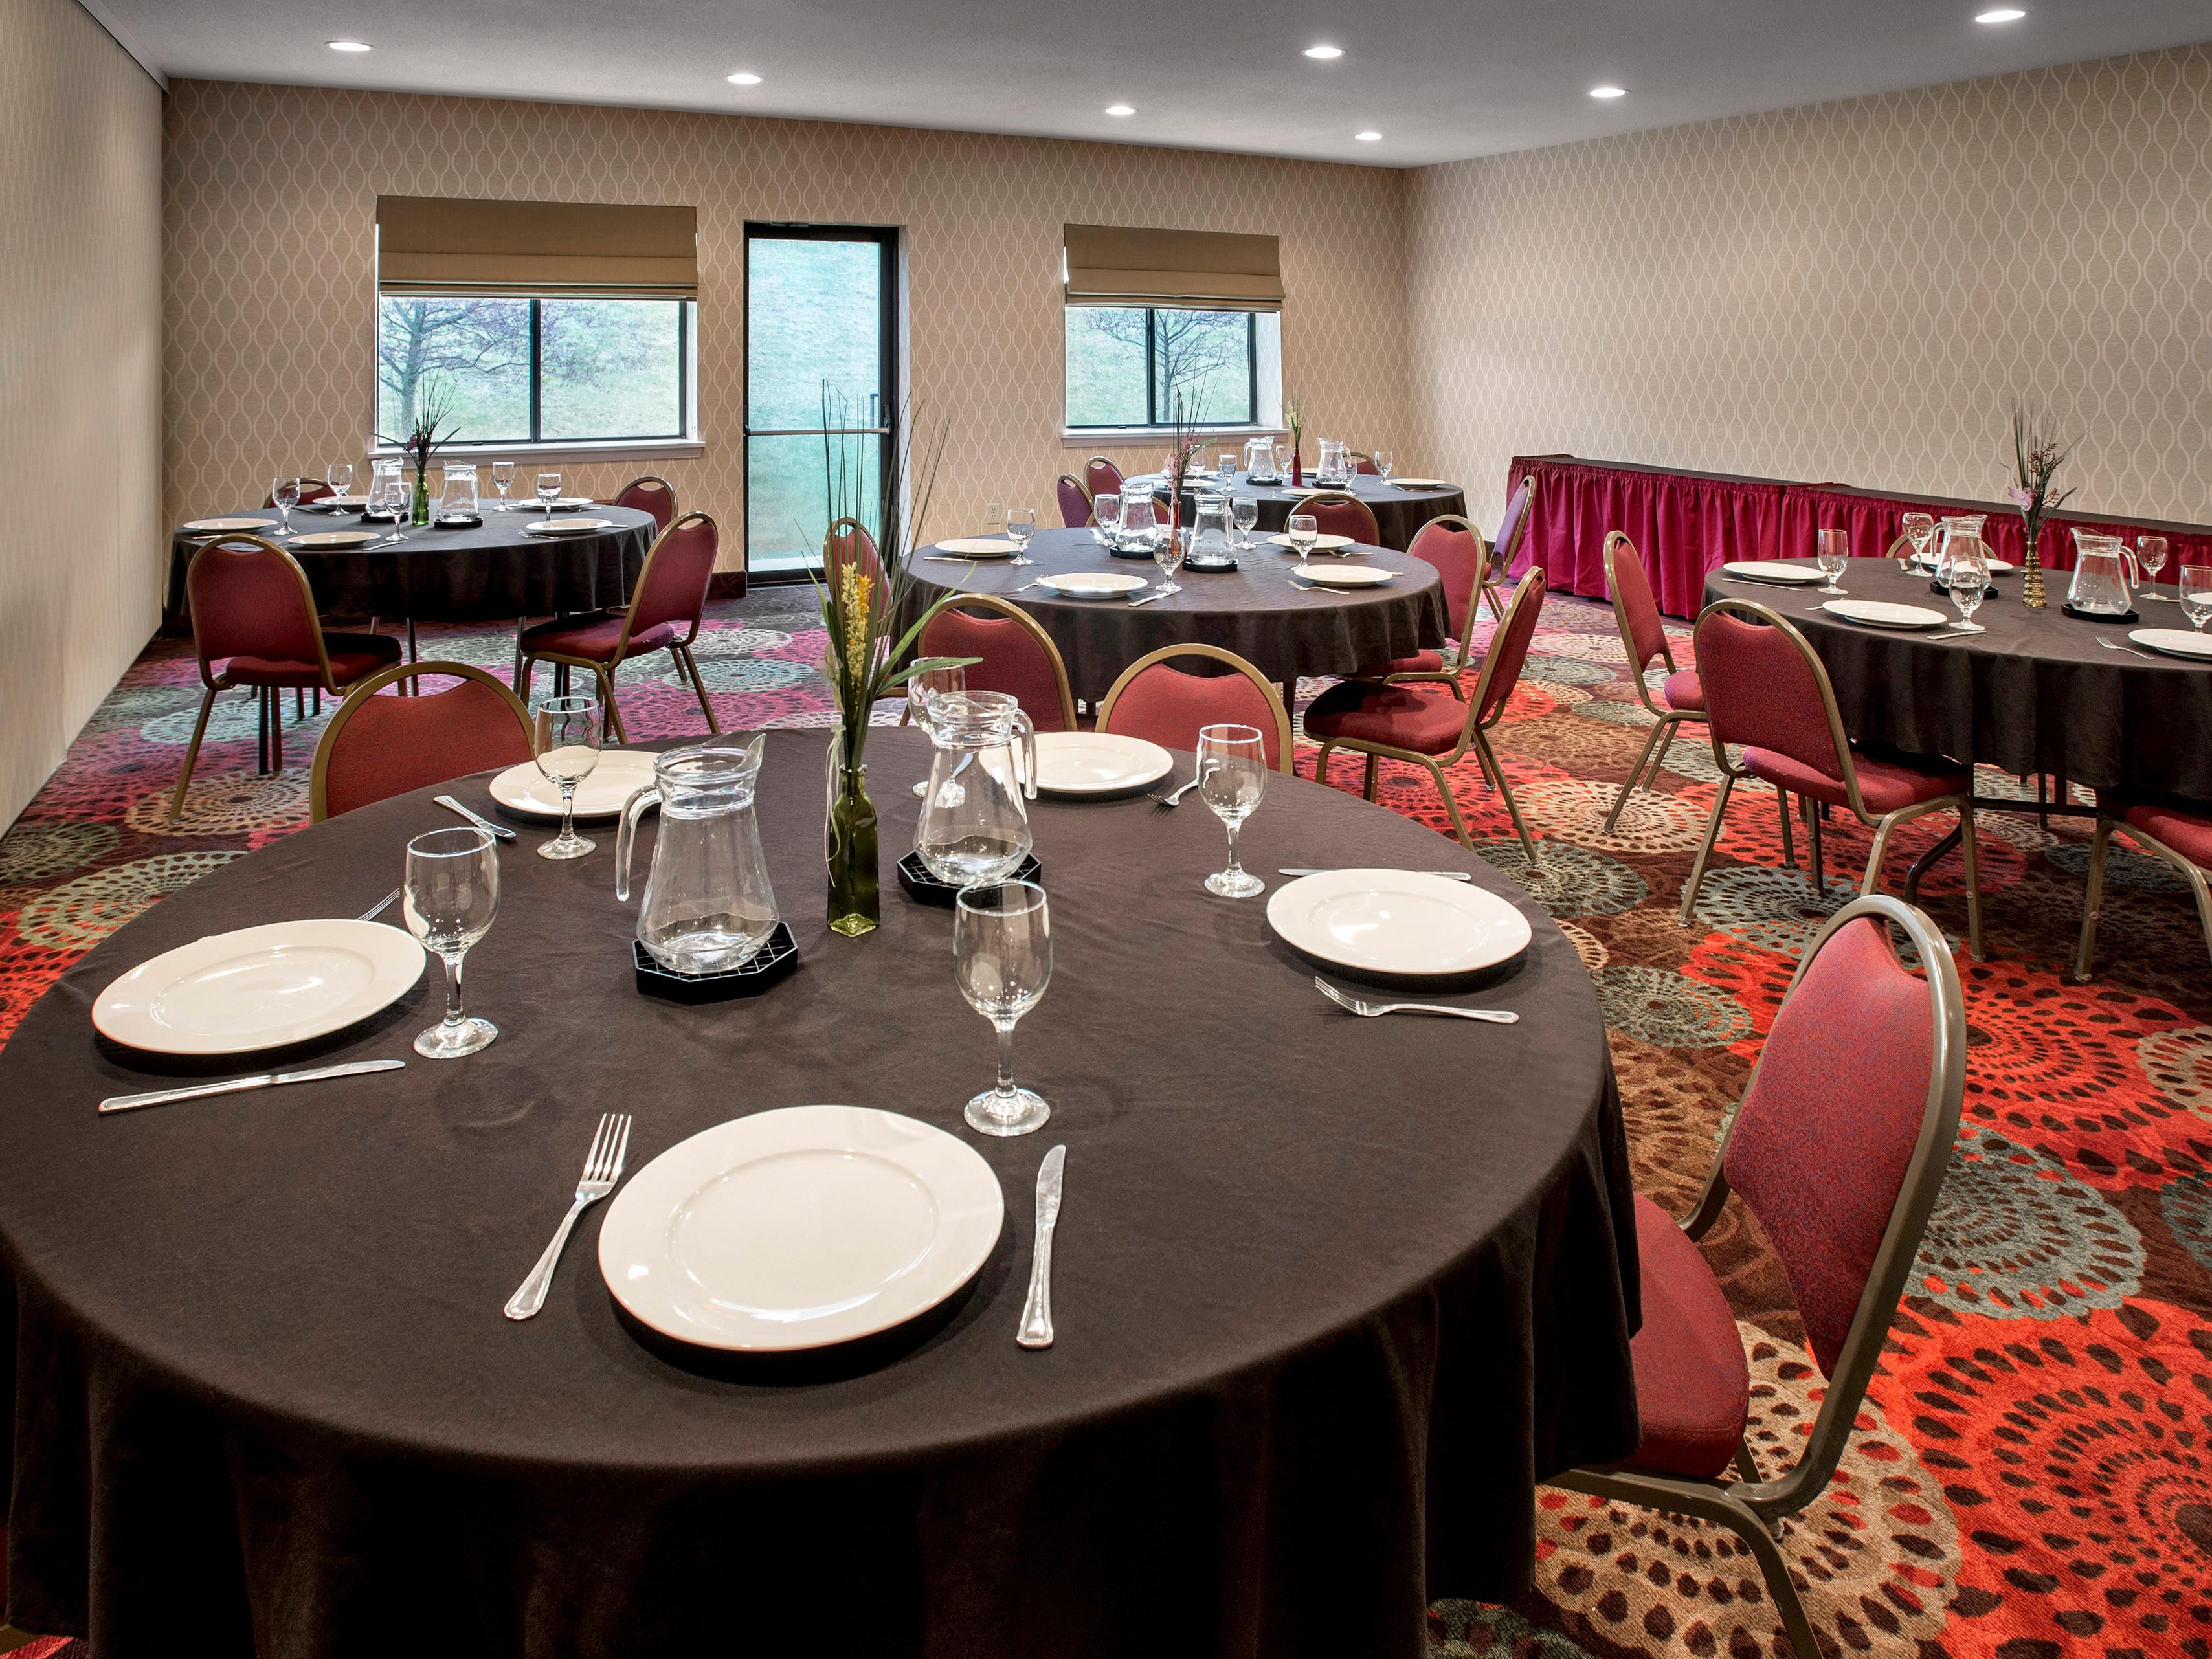 Use the Hudson Room or Empire Room banquet style.